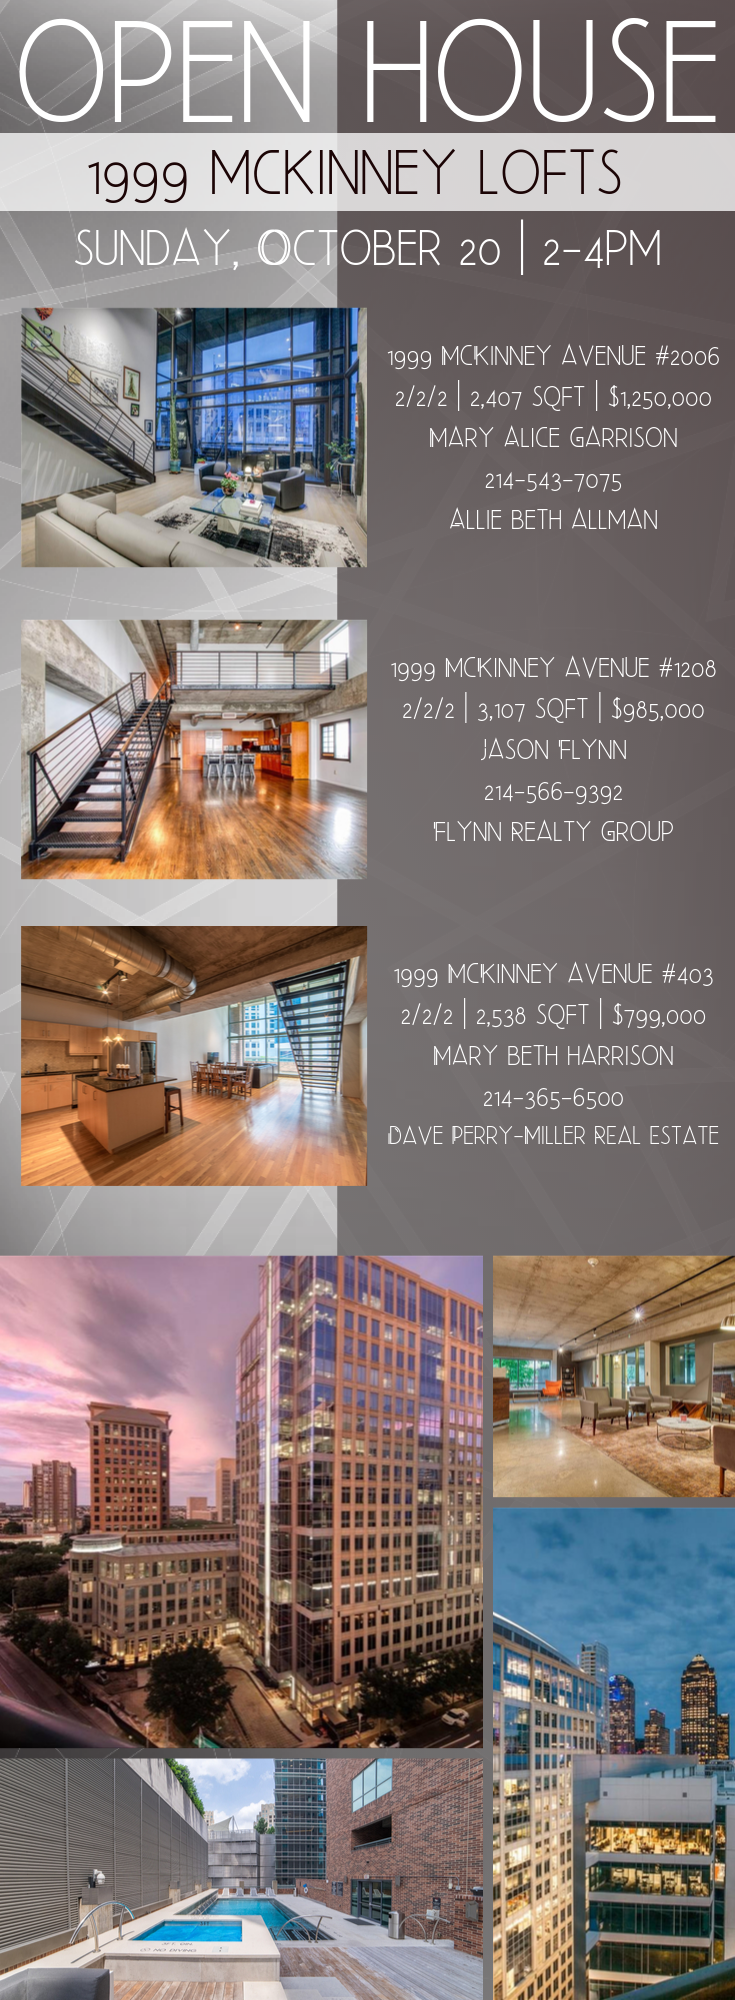 Open House - Multi Houses - Mckinney.png